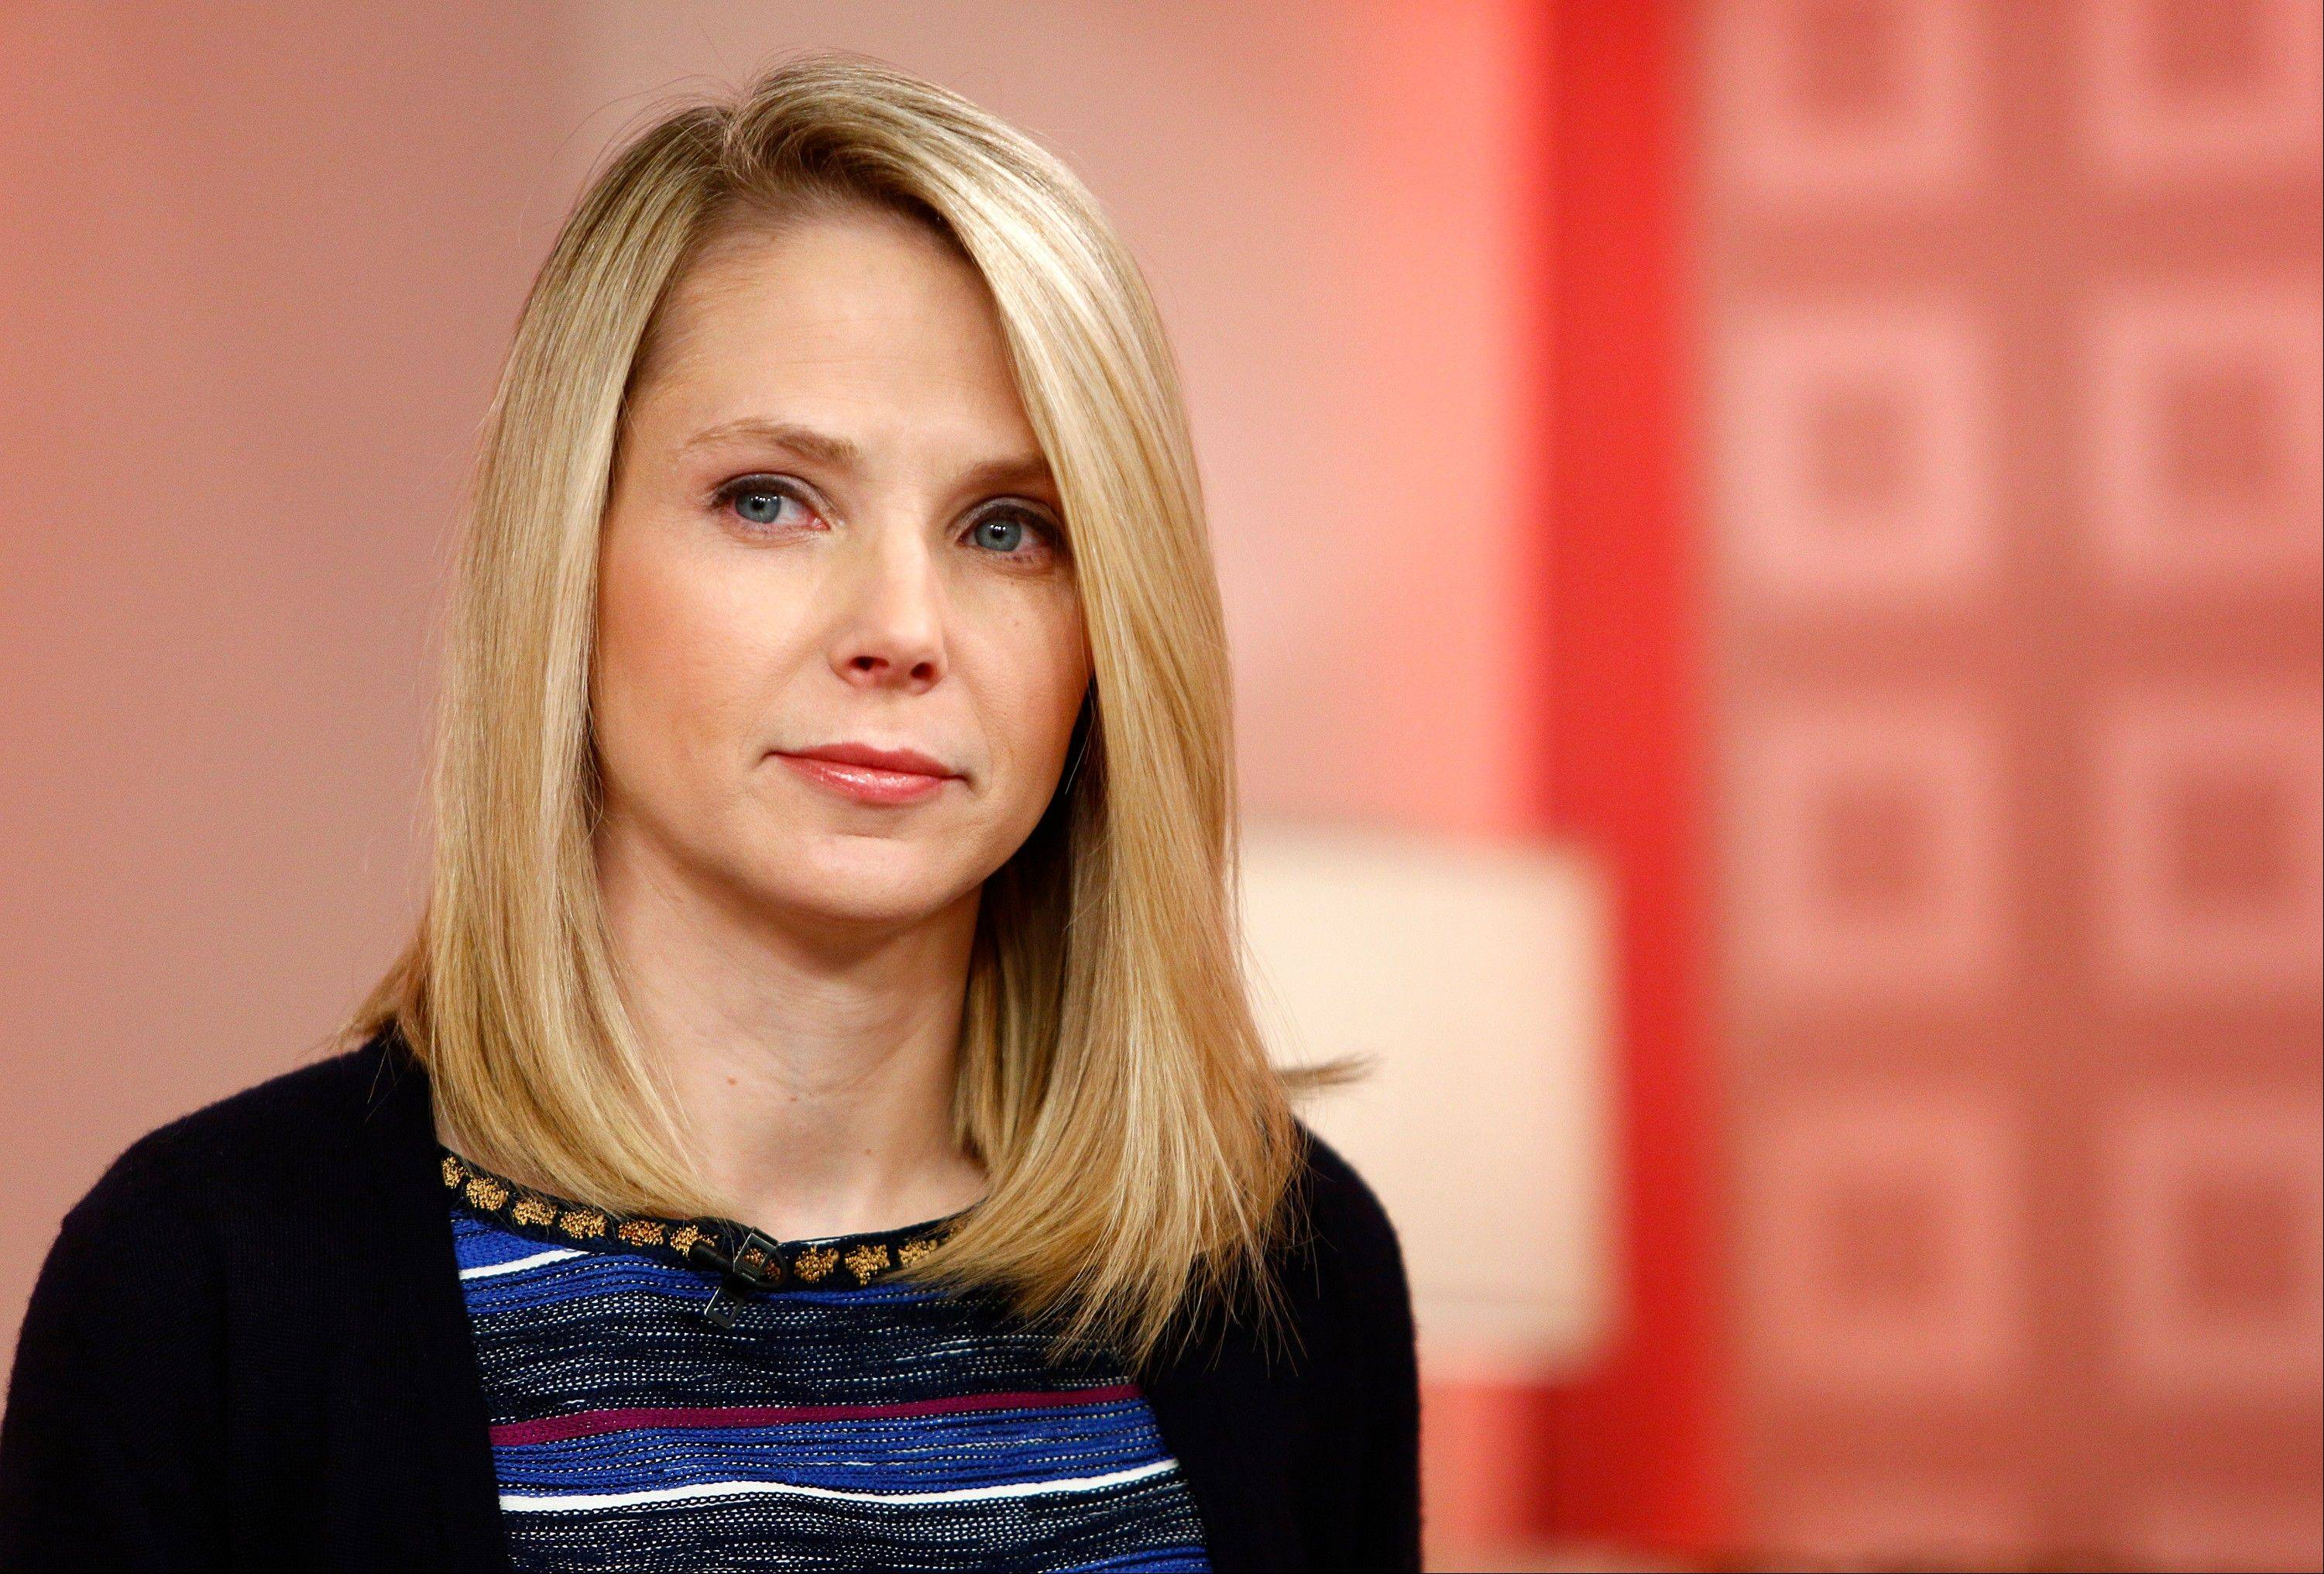 ASSOCIATED PRESS/NBC As Yahoo CEO Marissa Mayer goes about her business of saving Yahoo, which now involves a ban on working from home, a new study shows a significant jump in the number of U.S. employers offering flex and other quality-of-life perks.